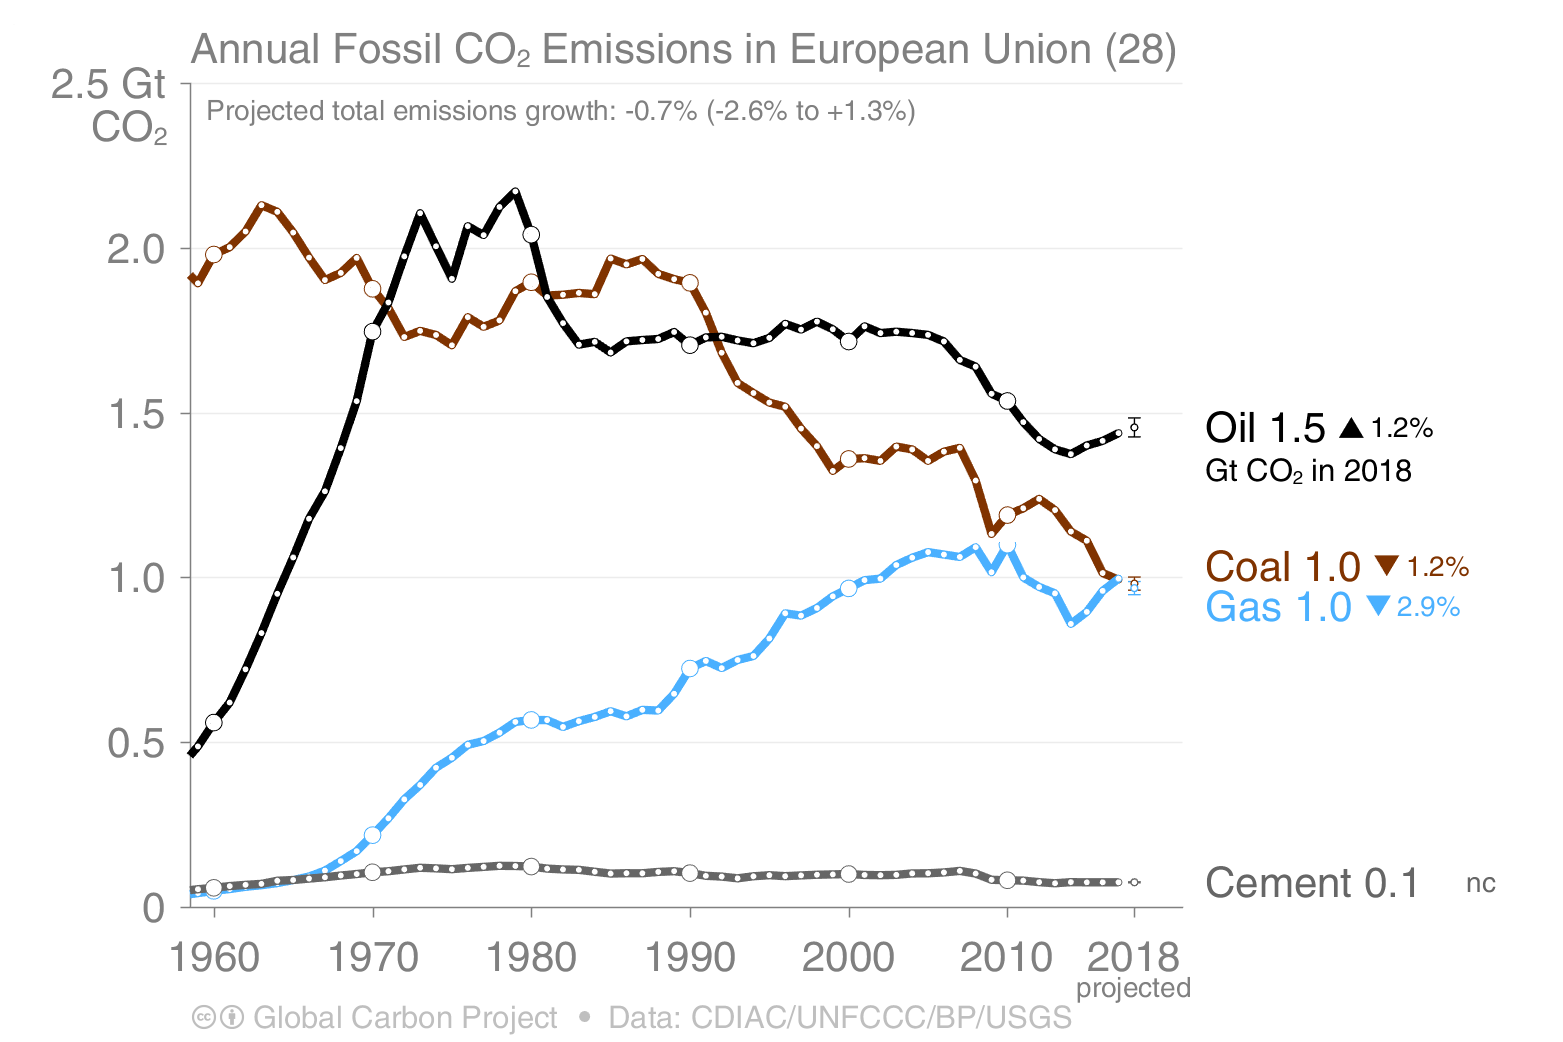 Annual fossil CO2 emissions in Europe 1960-2018 for coal, oil, gas and cement